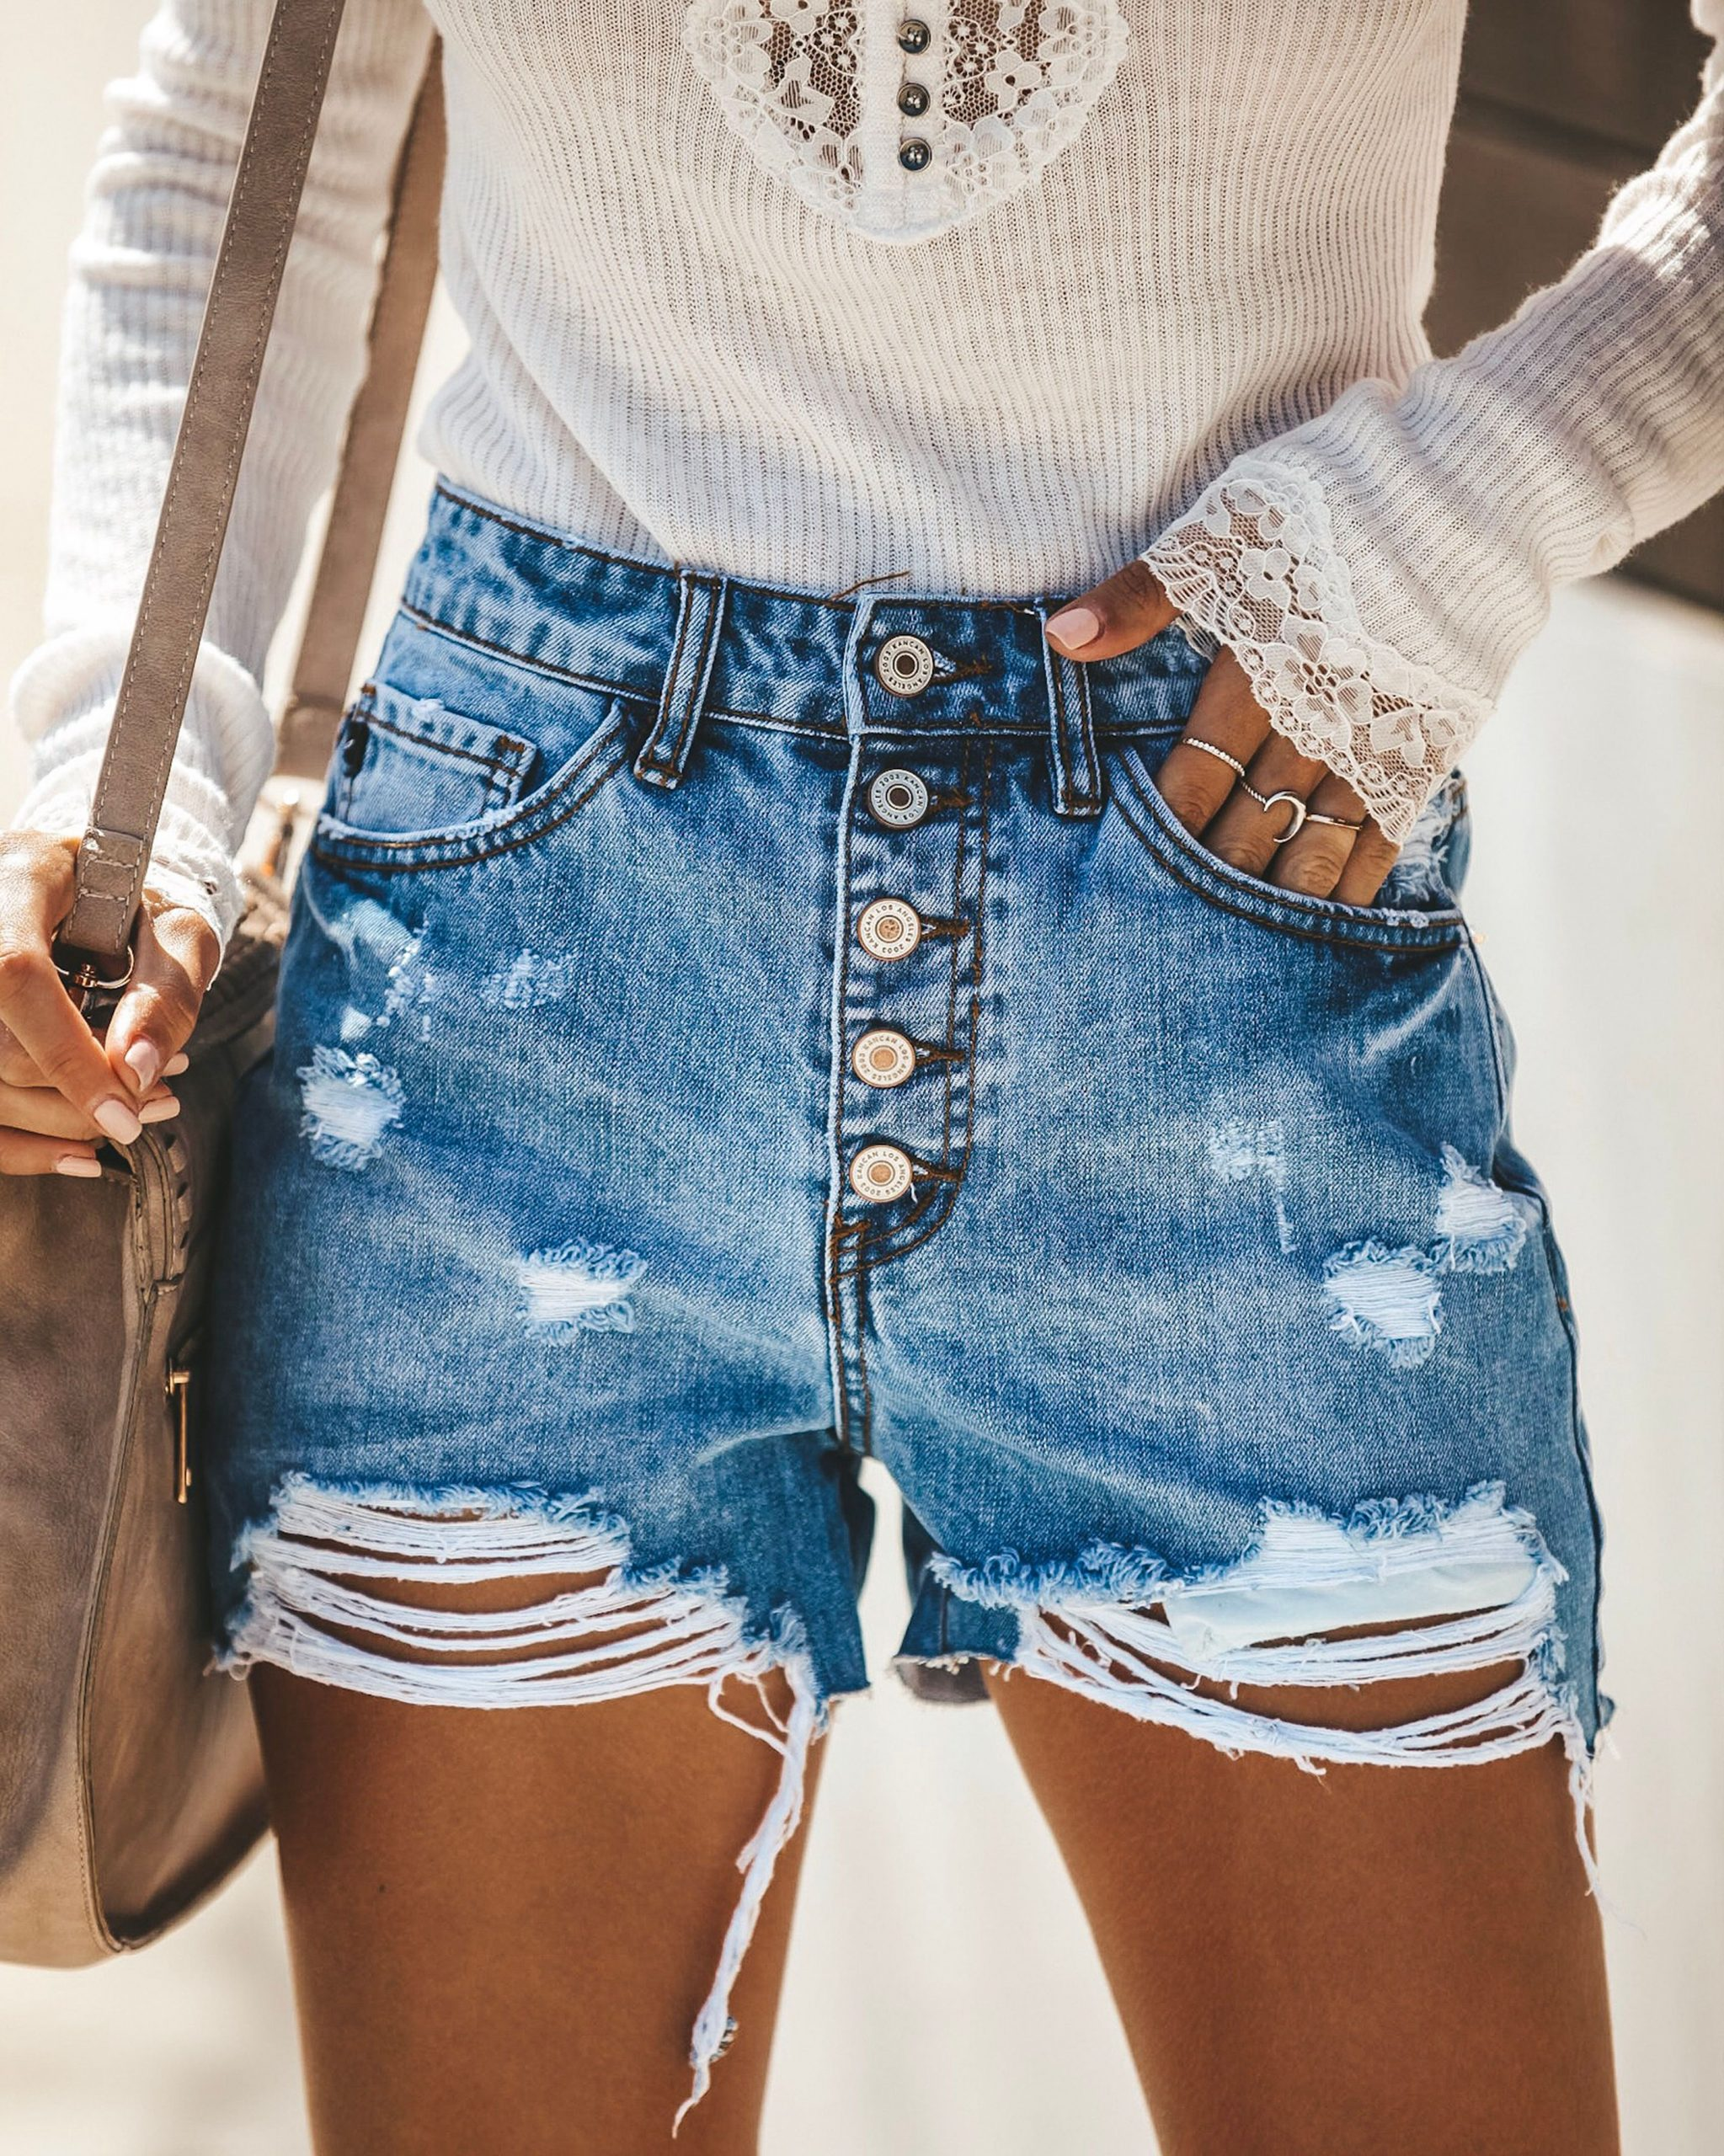 How To Wear High Waisted Distressed Shorts